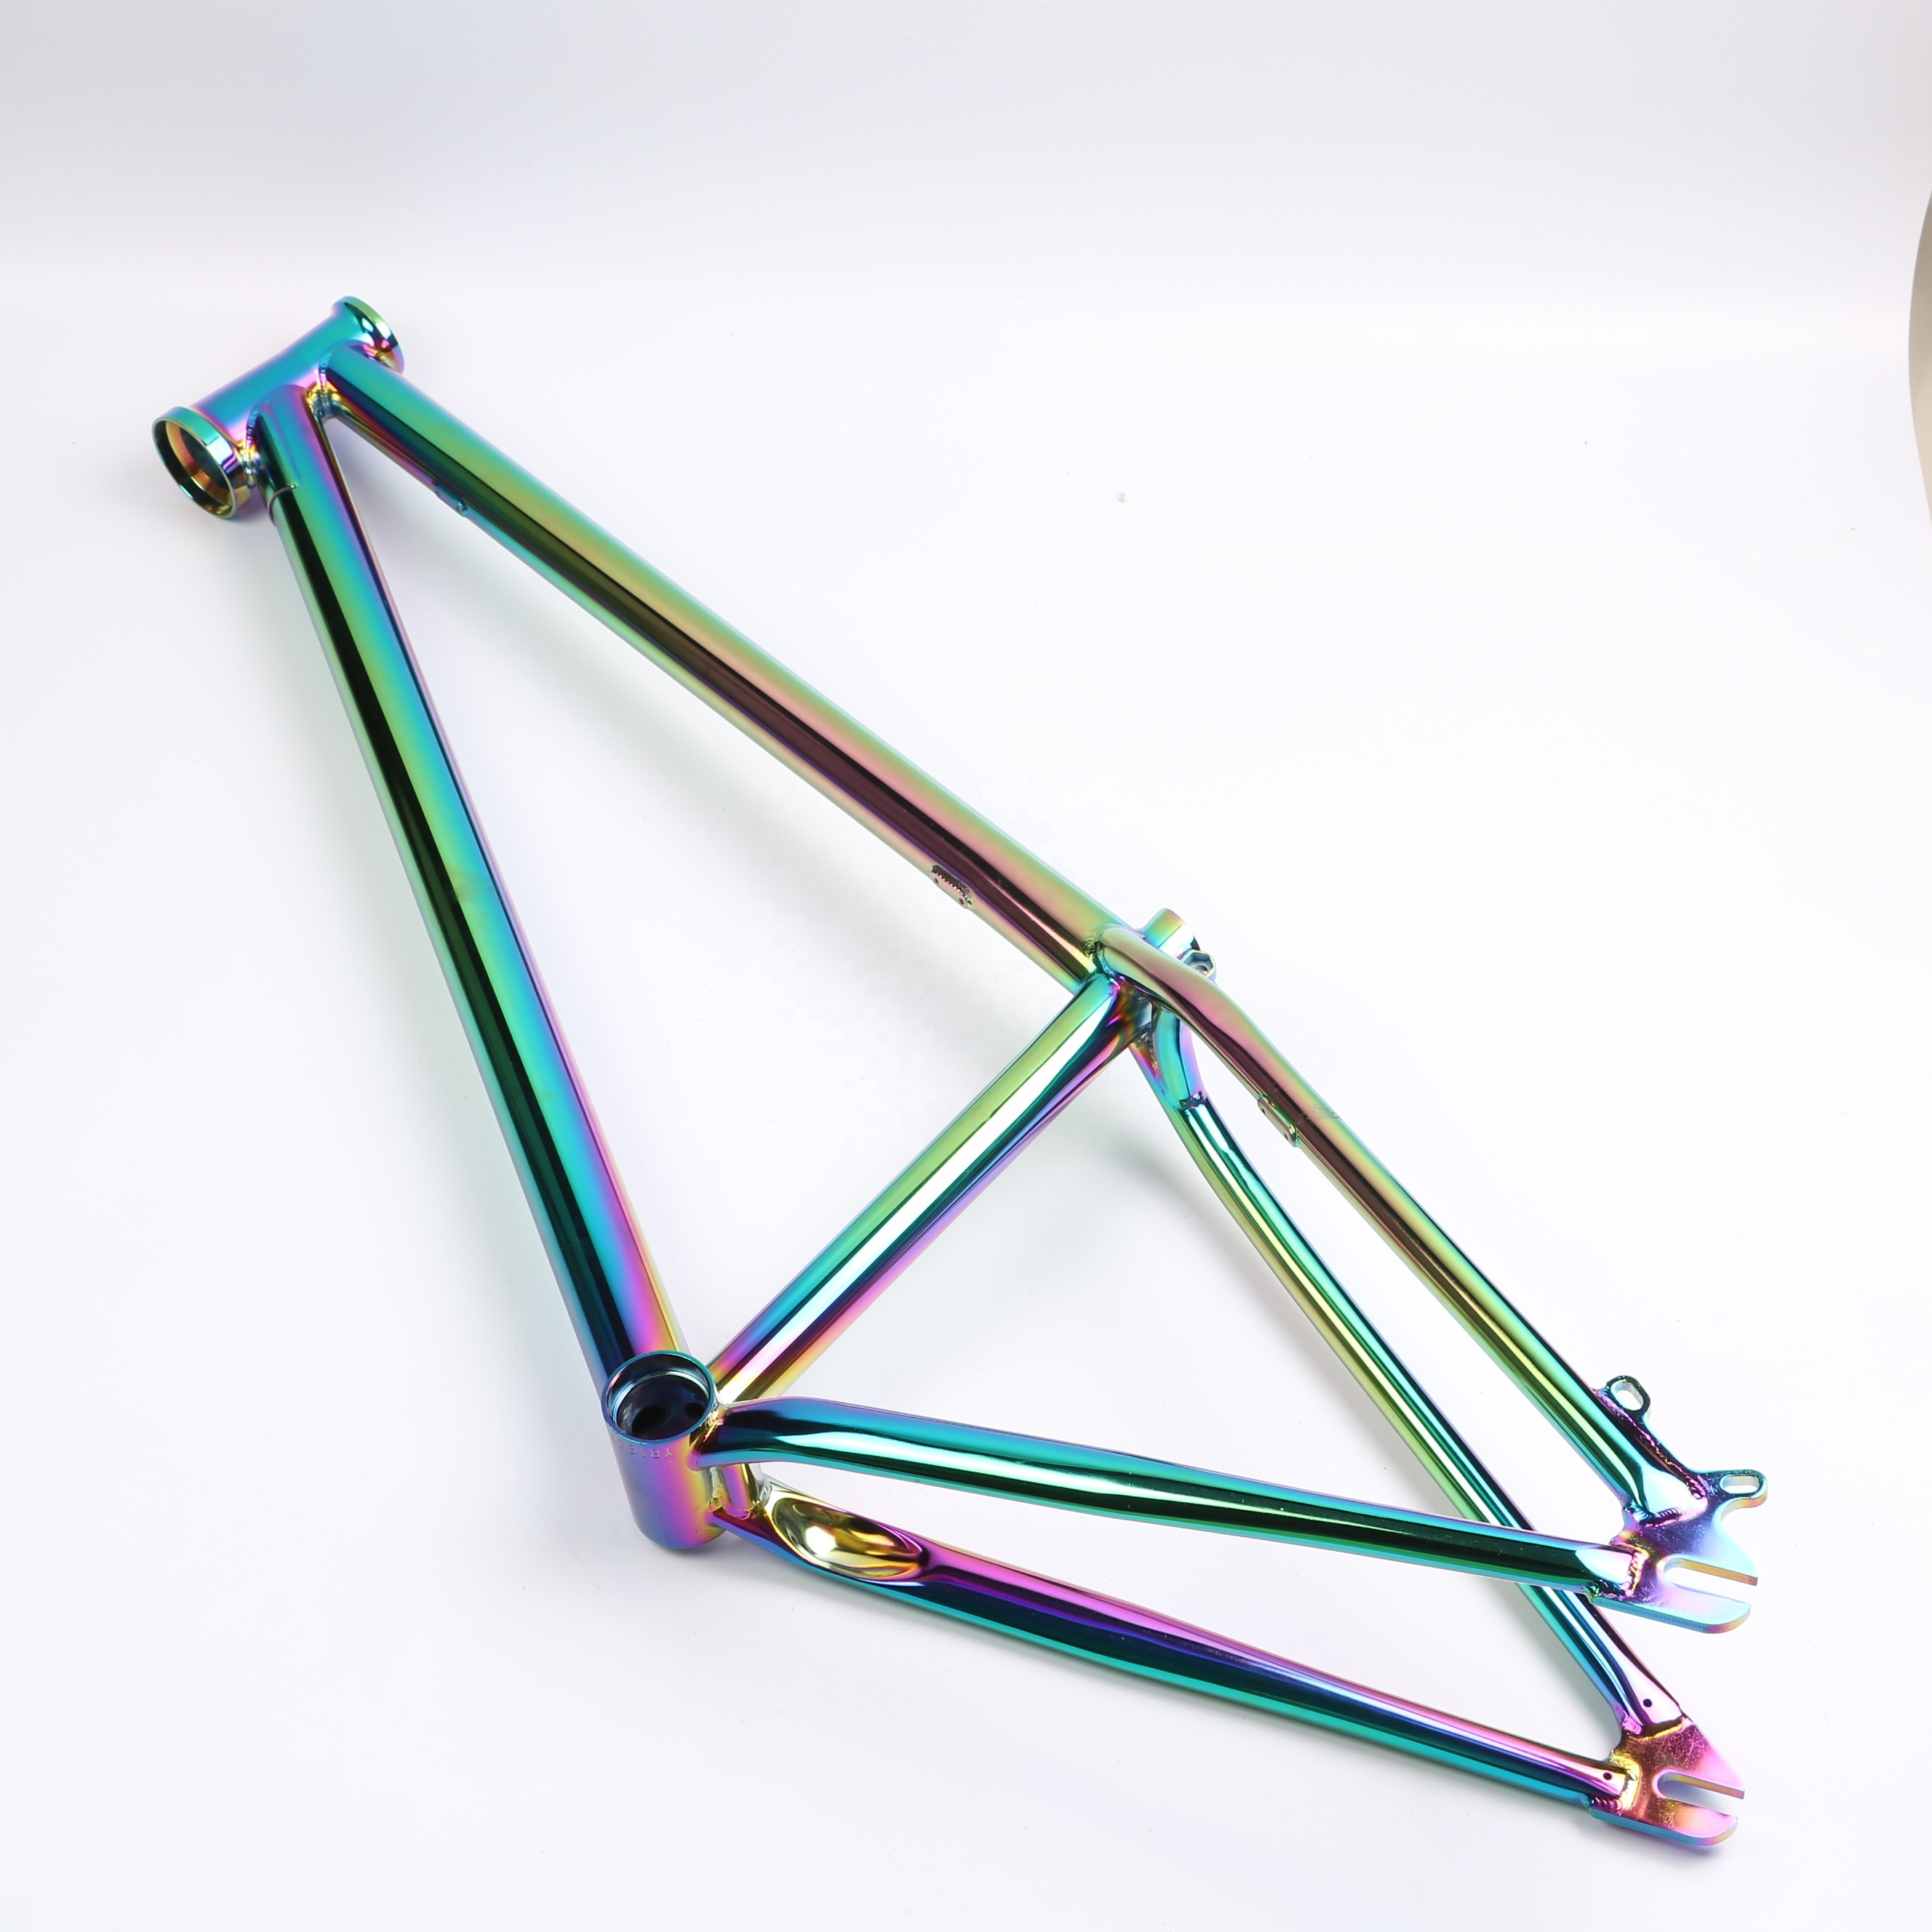 26 full chromoly dirt jump bike frame bicycle frame oil slick colorful rainbow frame view dirt jump frame oem product details from linq bike